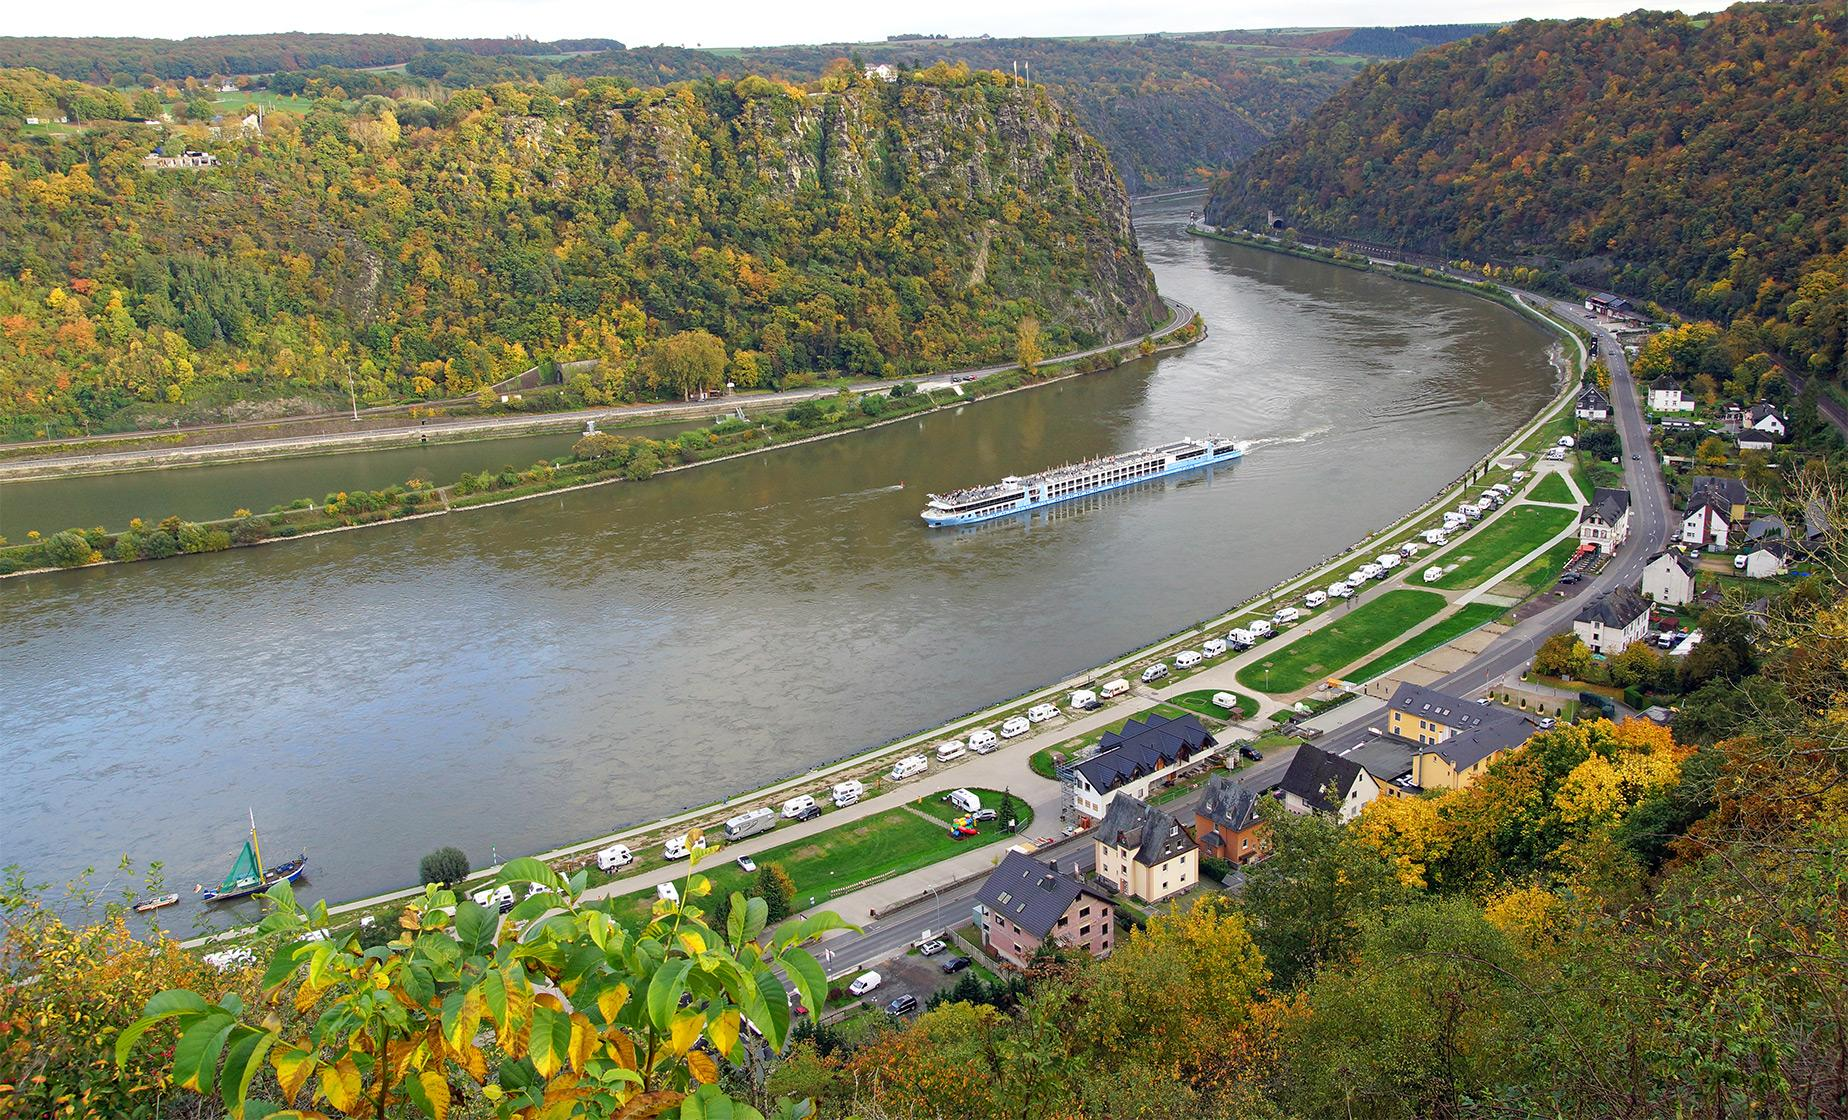 Sightseeing Cruise to St. Goar & Cable Car Combo